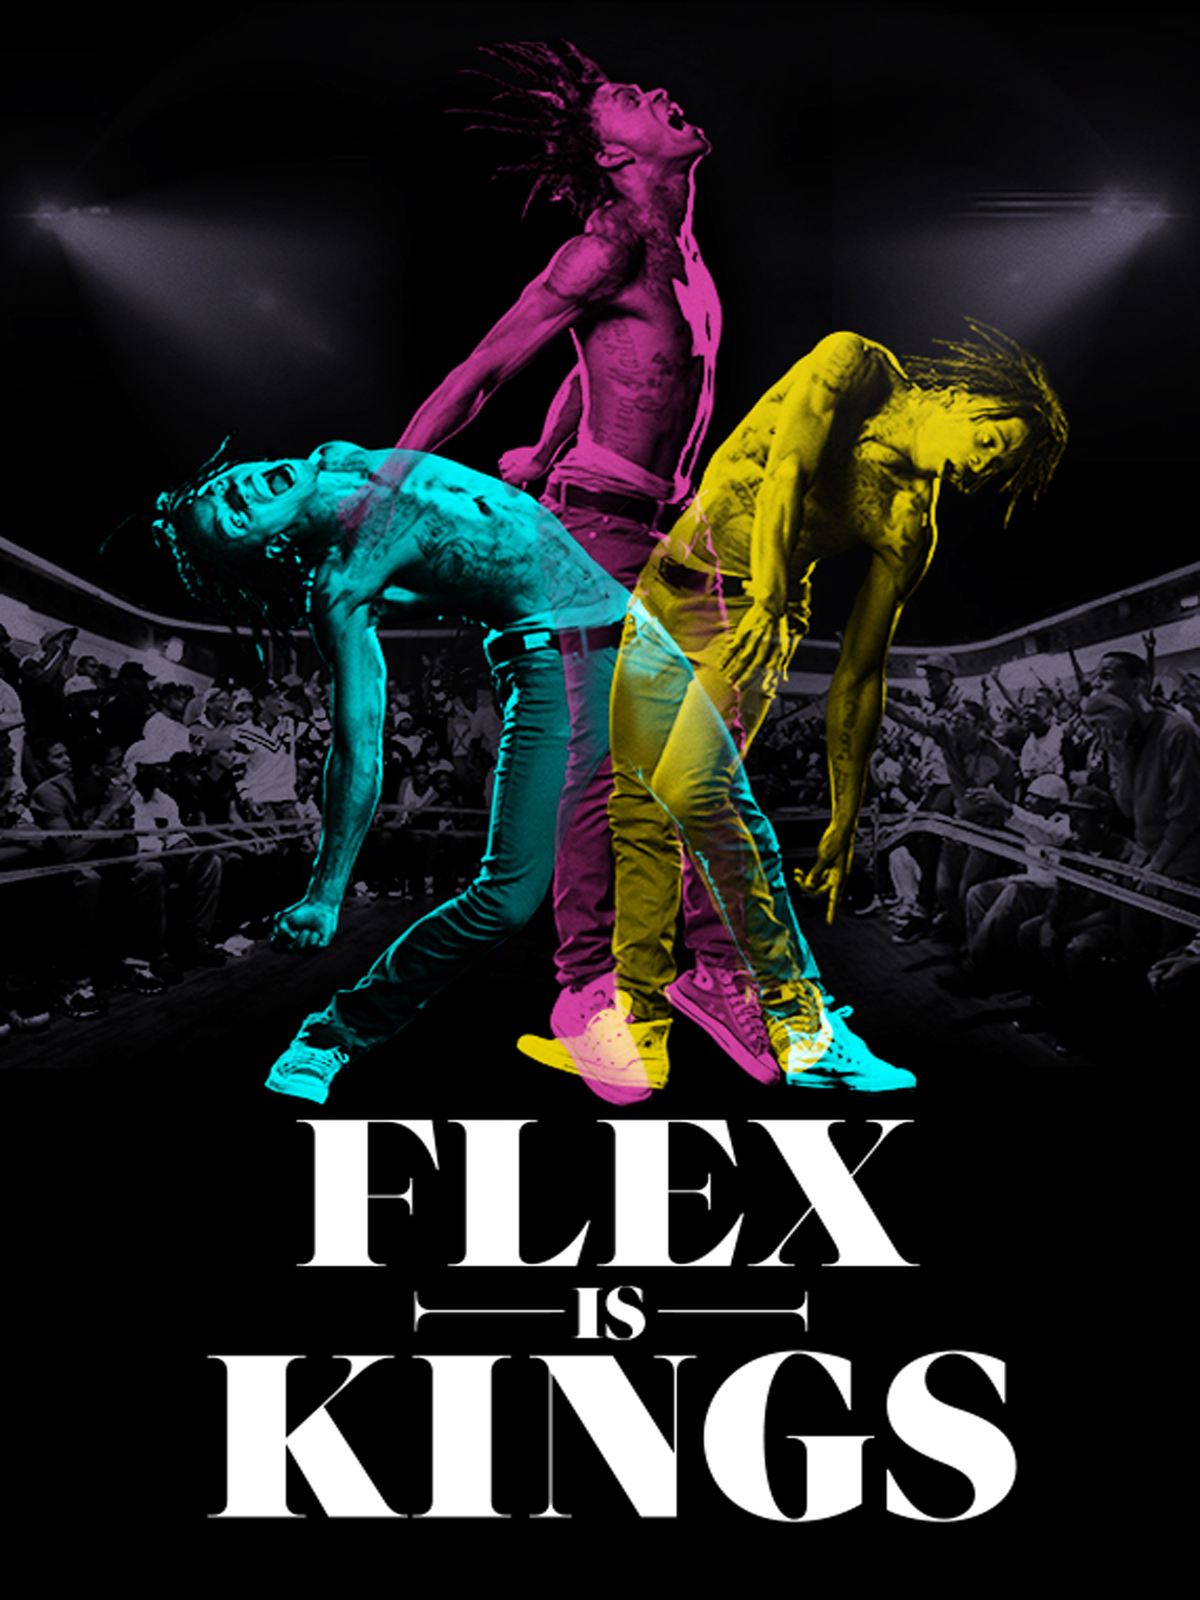 Flex Is Kings